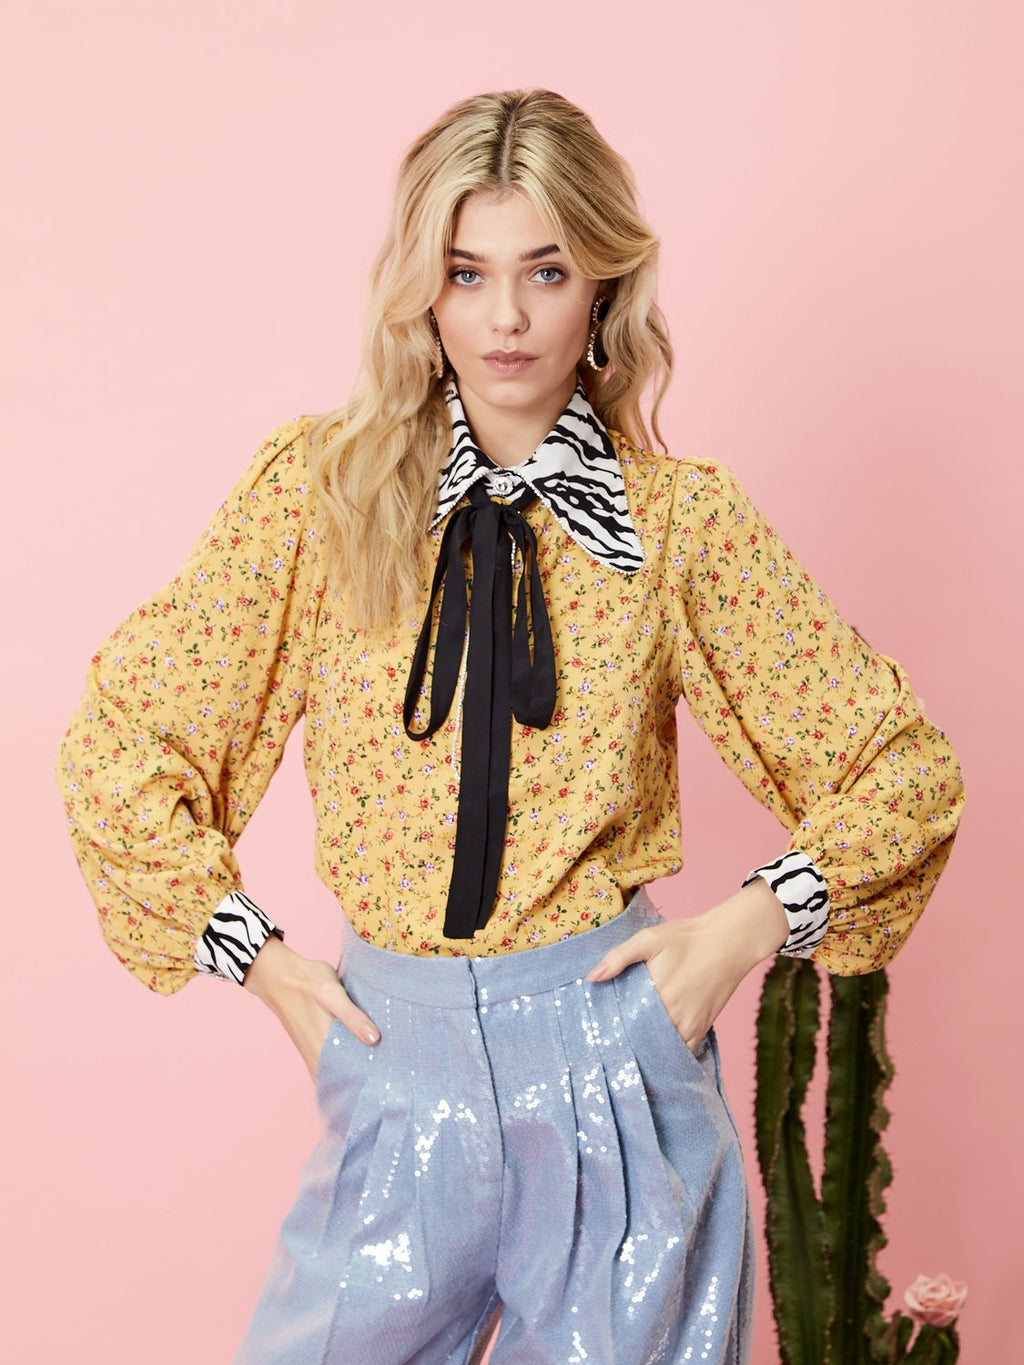 Yellow floral blouse with contrasting zebra print on collar and cuffs from iconic British brand Sister Jane. Playful to wear to the office or to a party. Features a cool skinny neck bow.